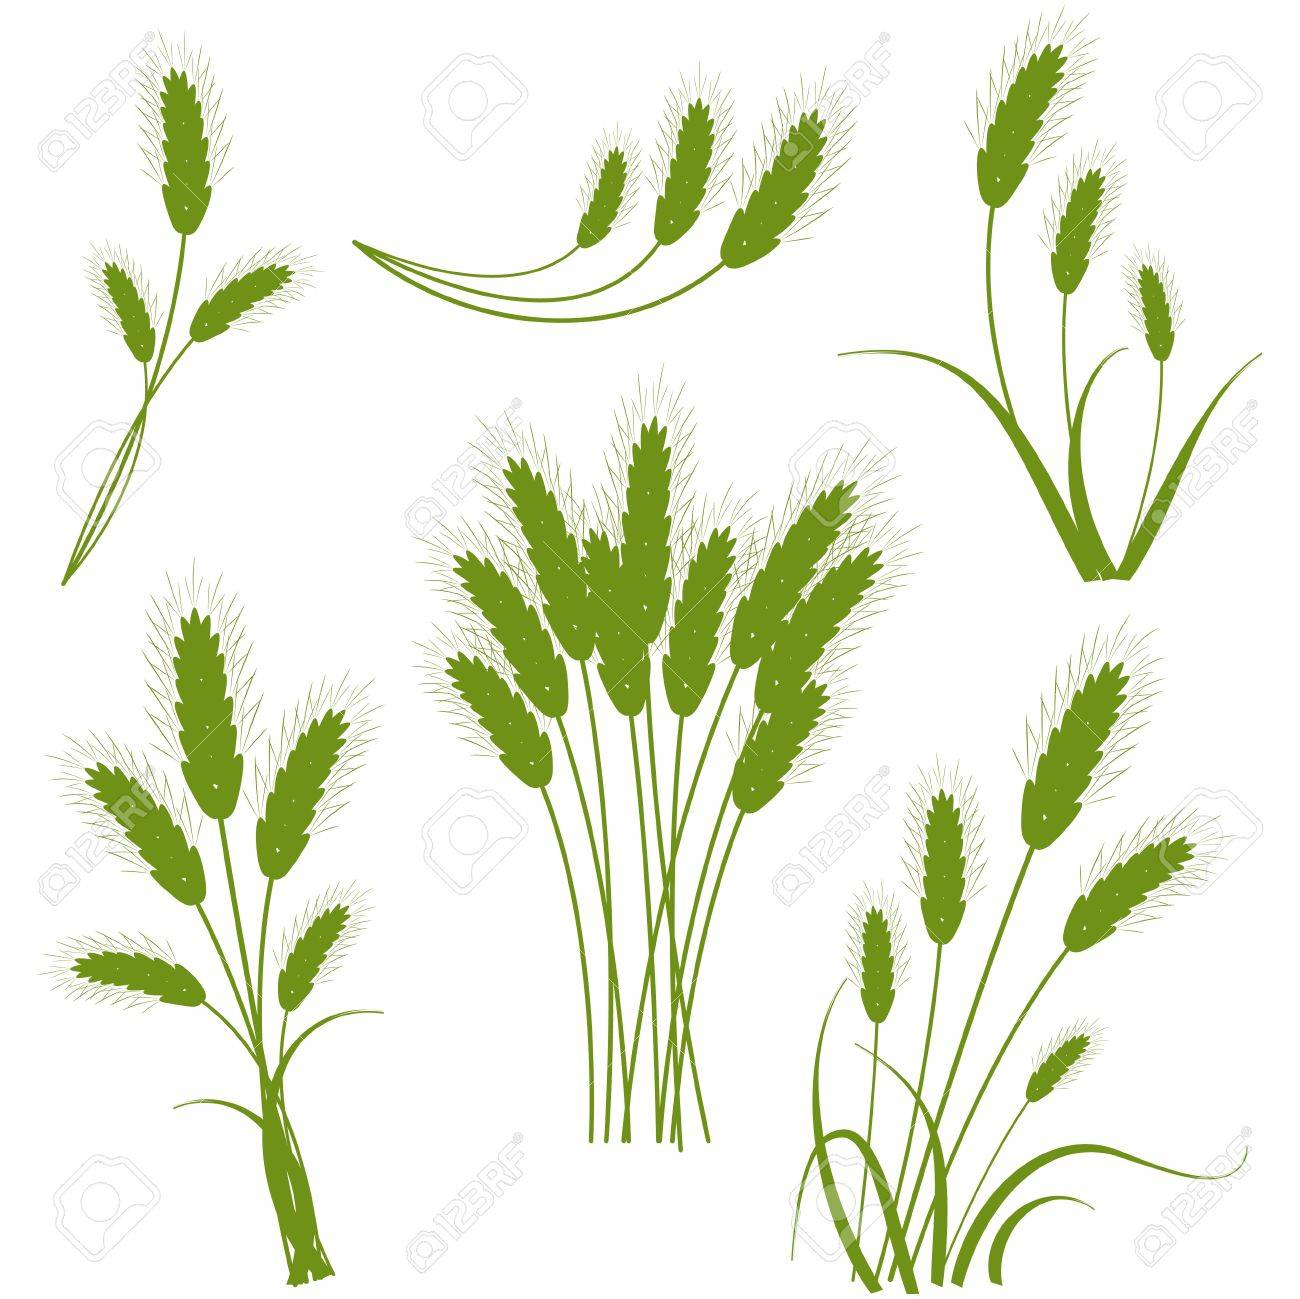 Spikes cereals - the concept of agriculture Stock Vector - 15468027